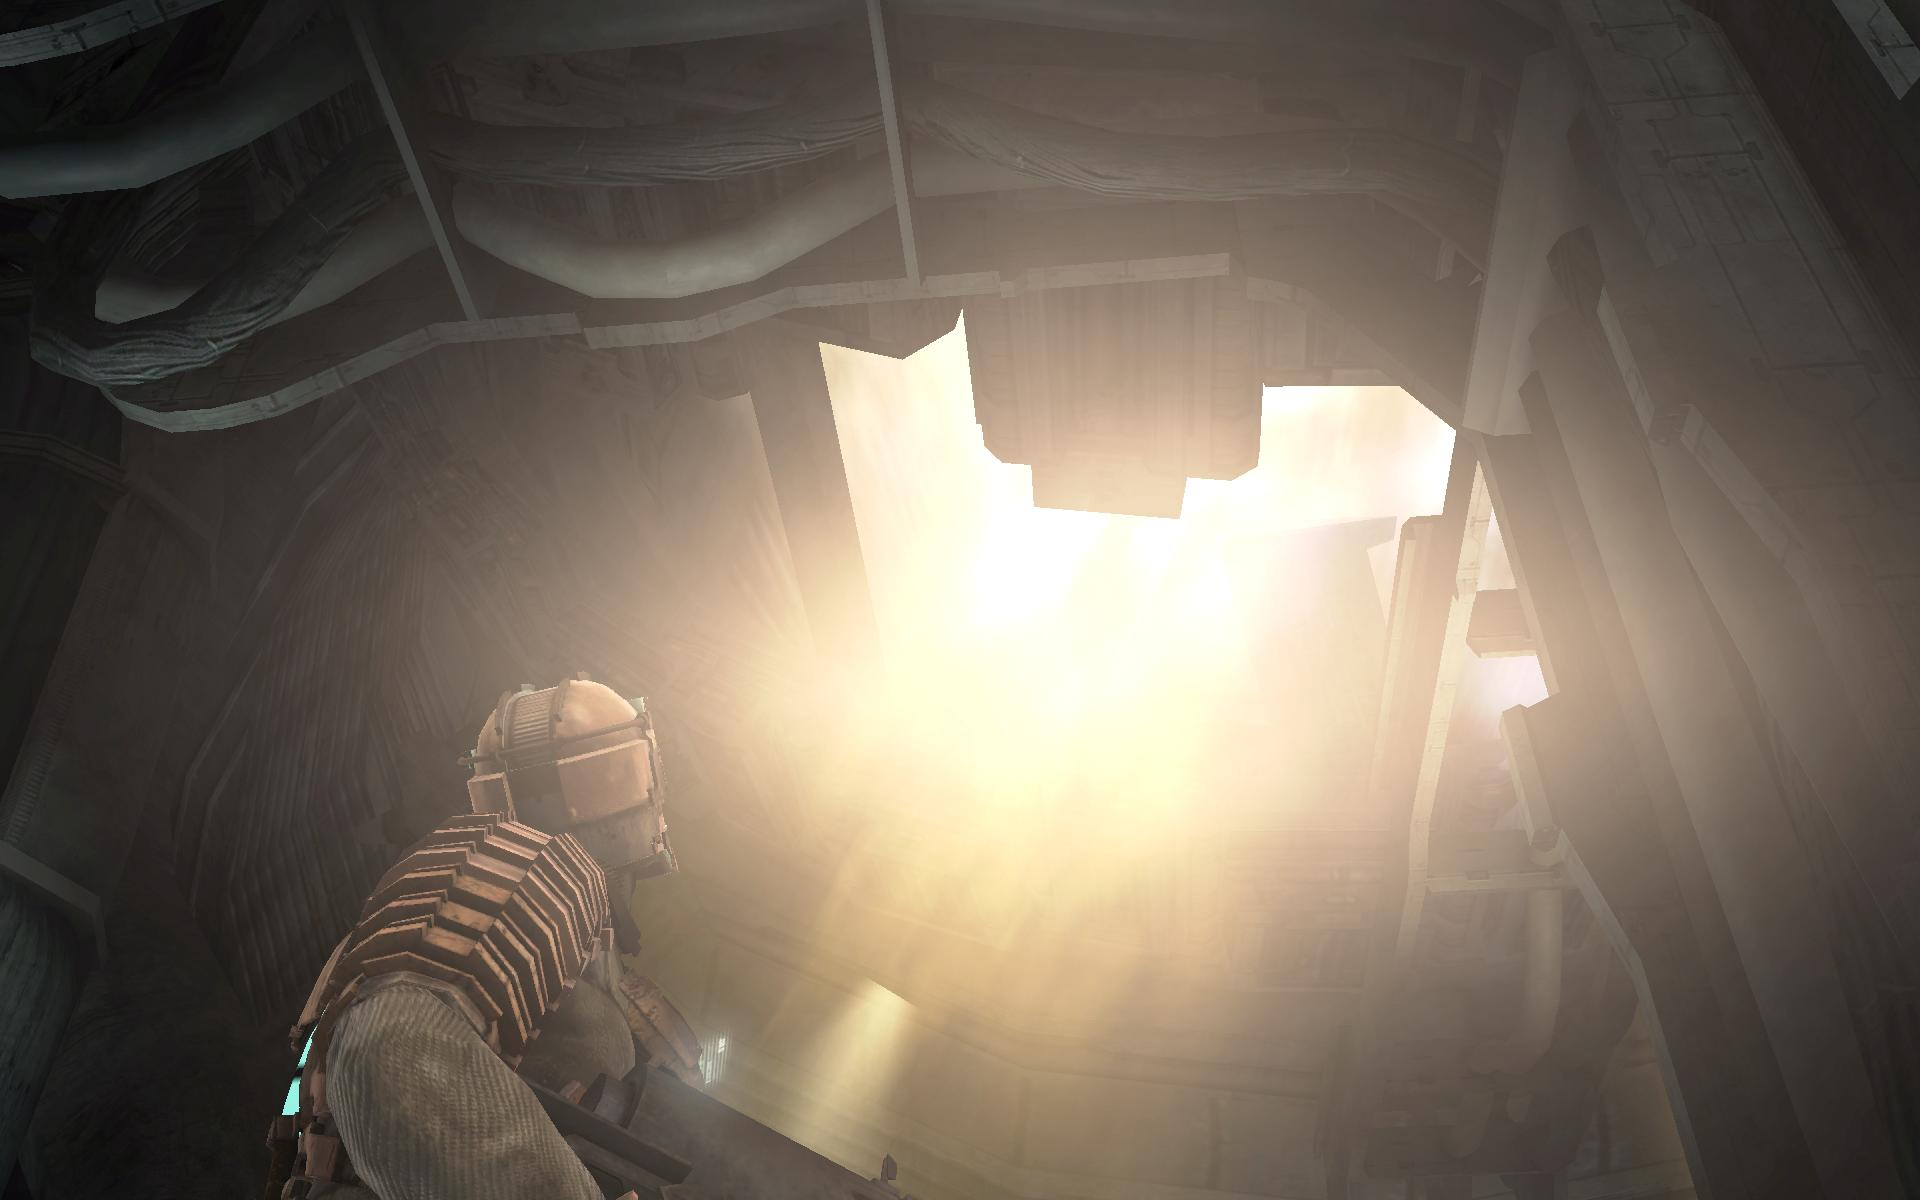 dead-space-2011-01-29-16-04-57-09